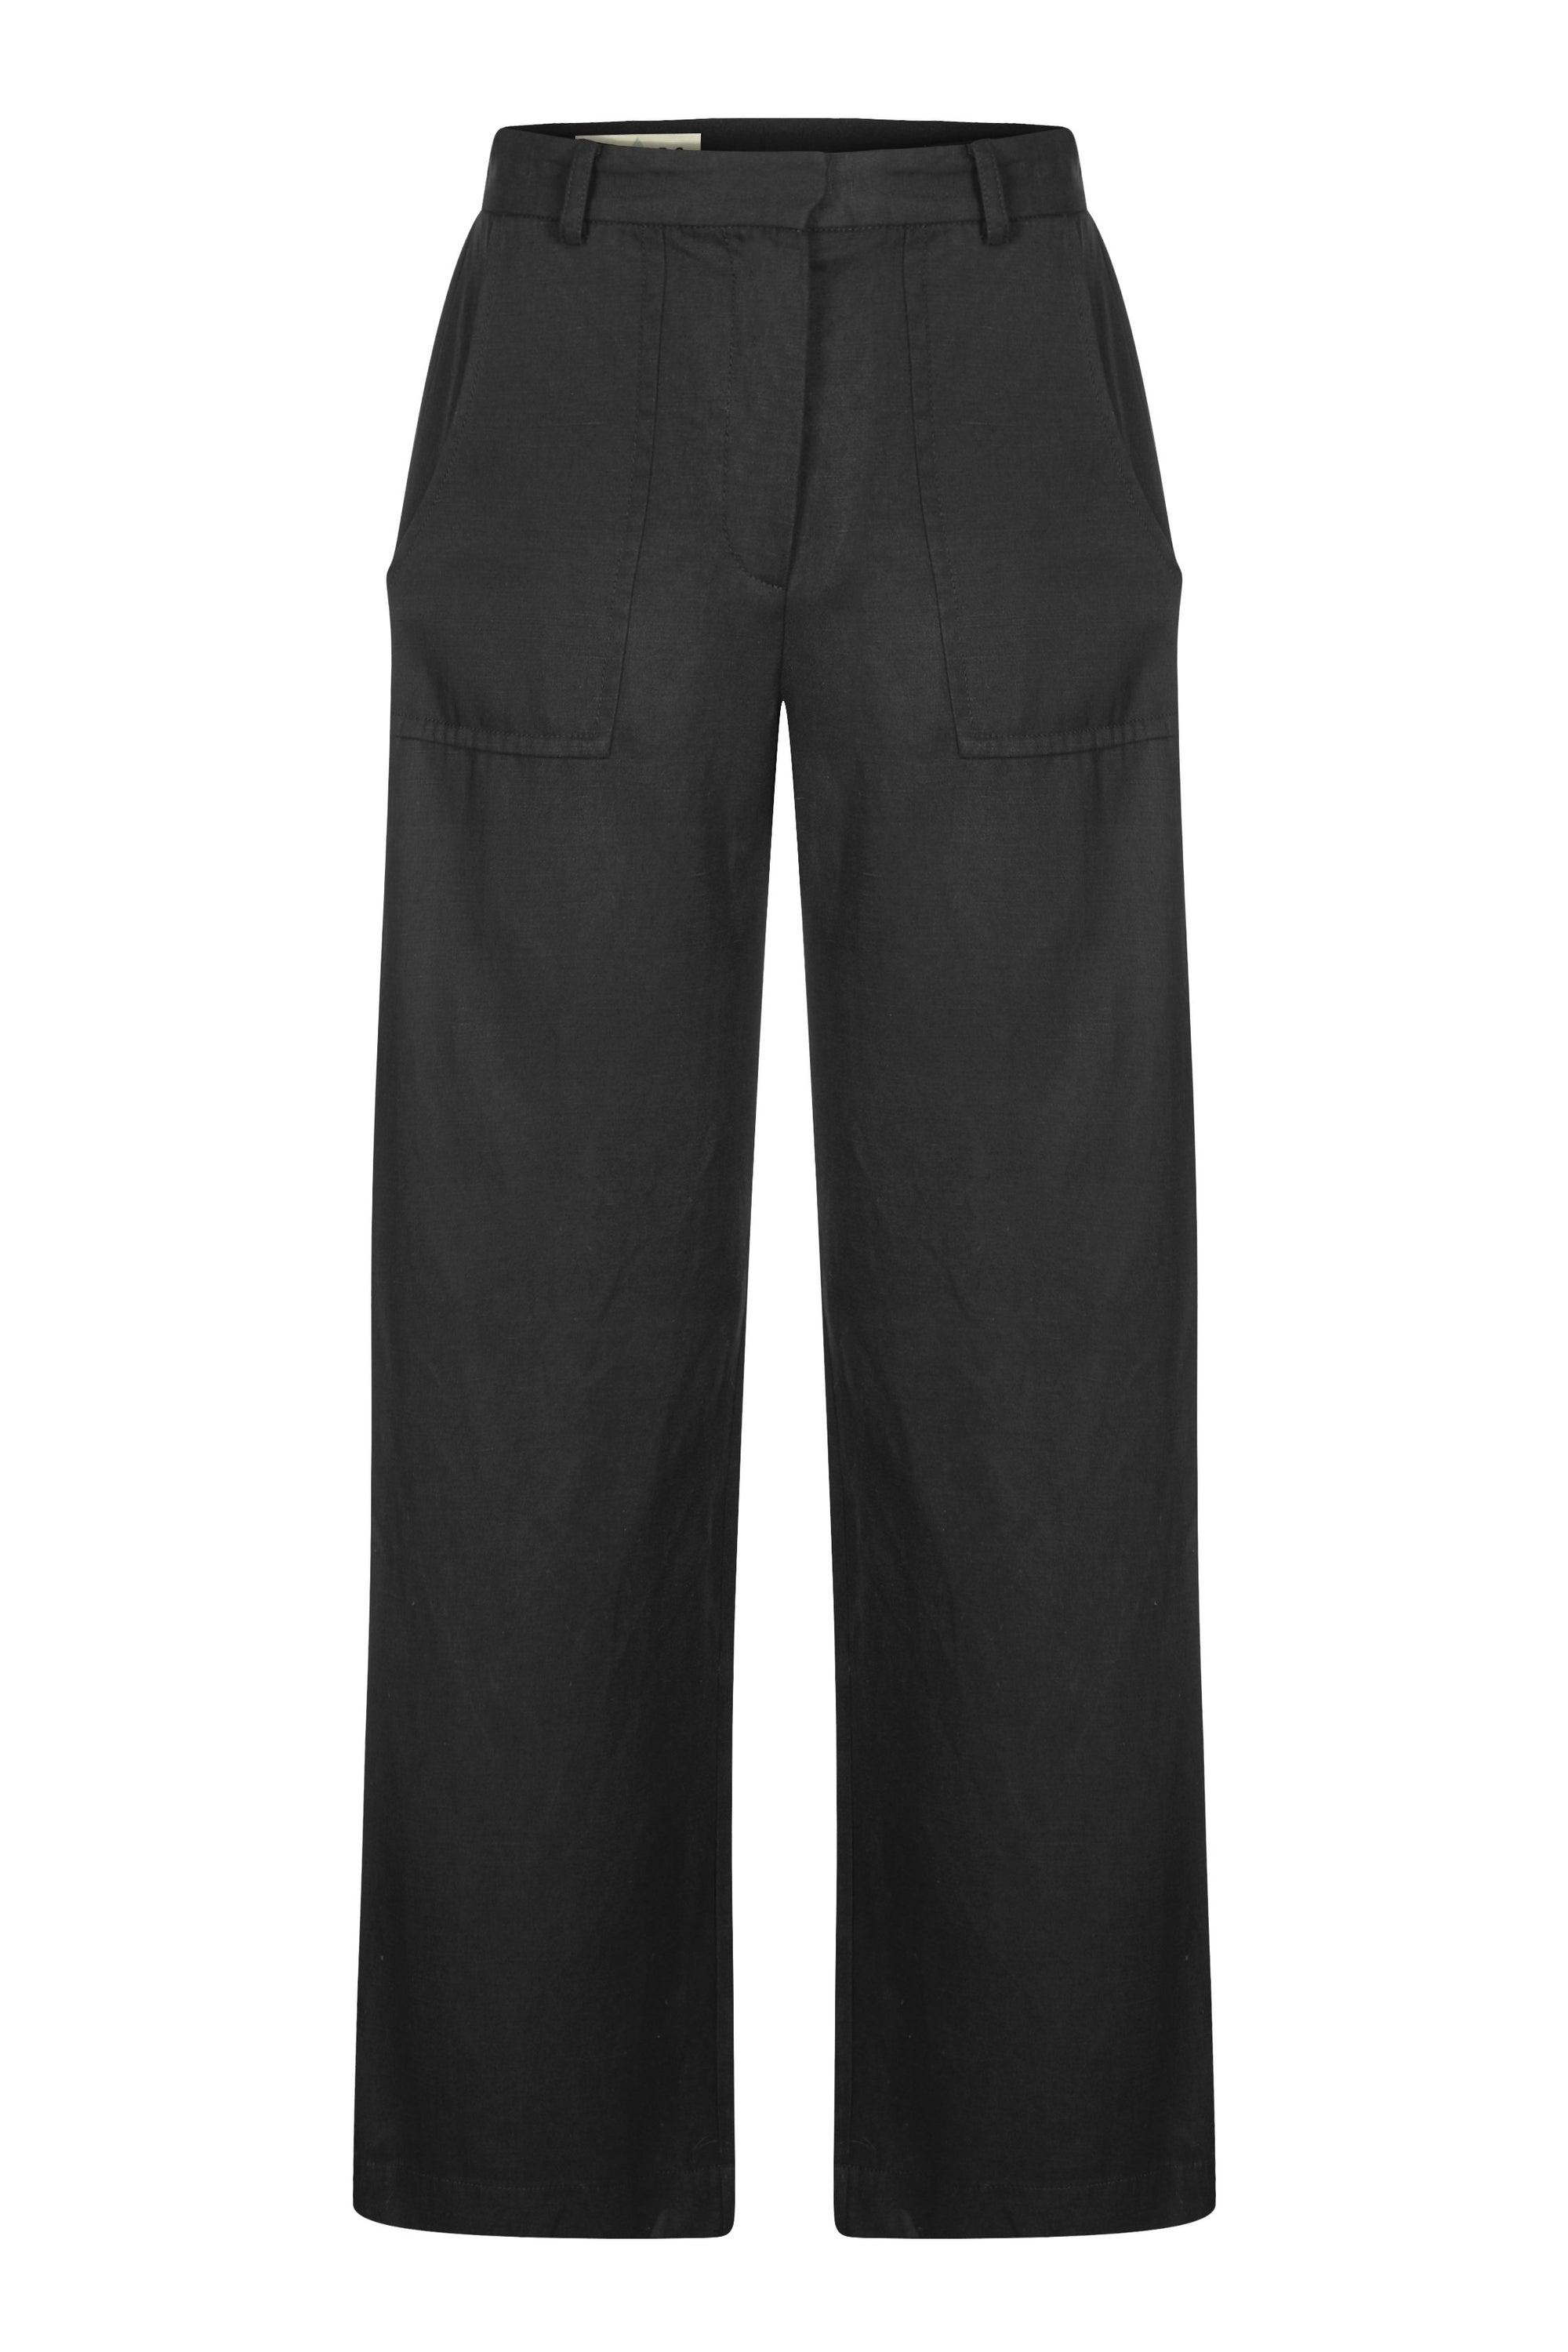 FISHER WIDE Tencel Trousers Coal